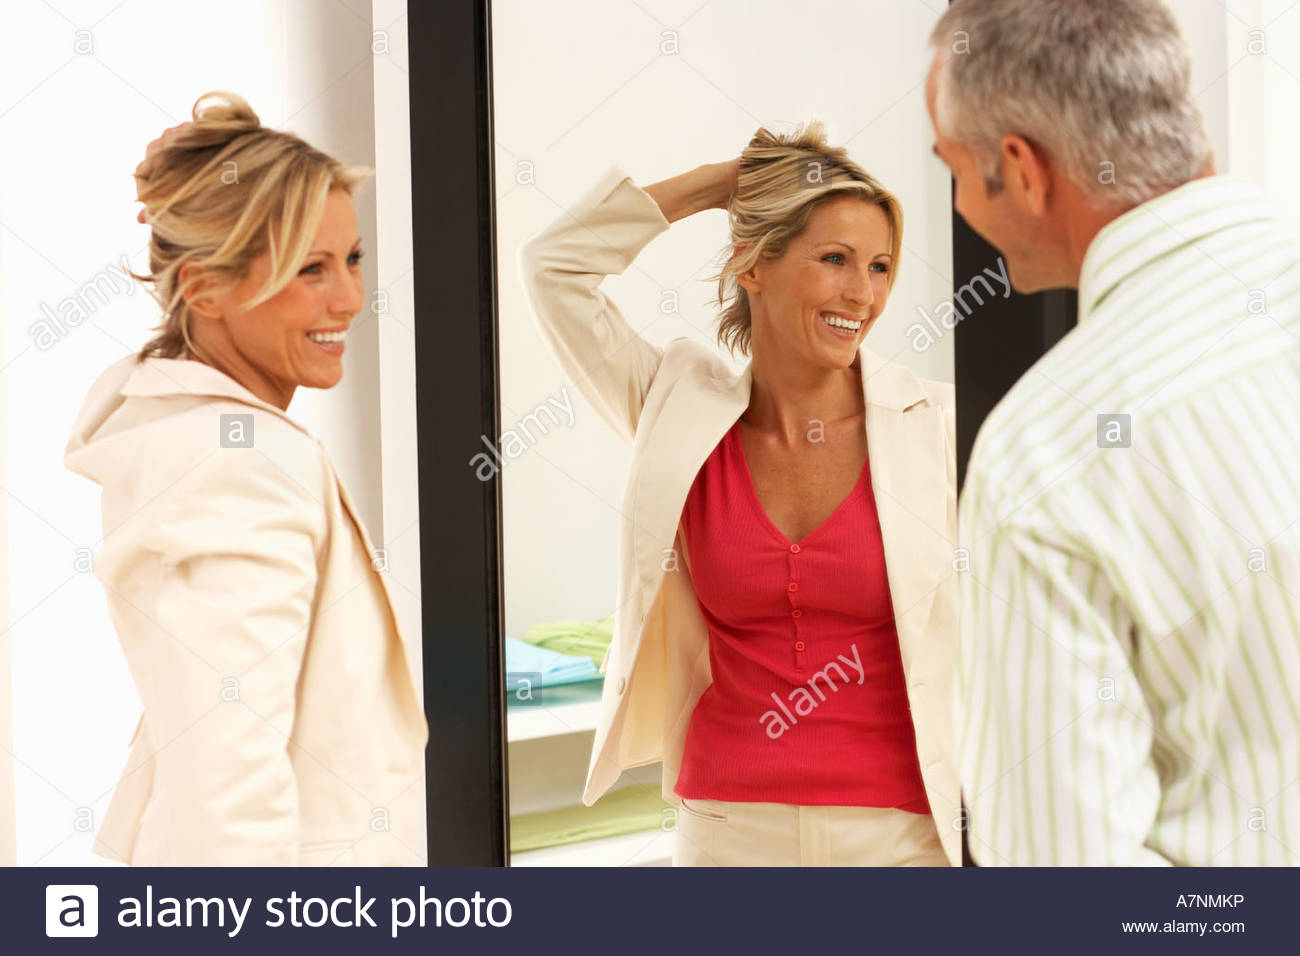 2fd84e4fa81e Woman trying on new clothes in fitting room hand in hair reflection in  mirror husband looking